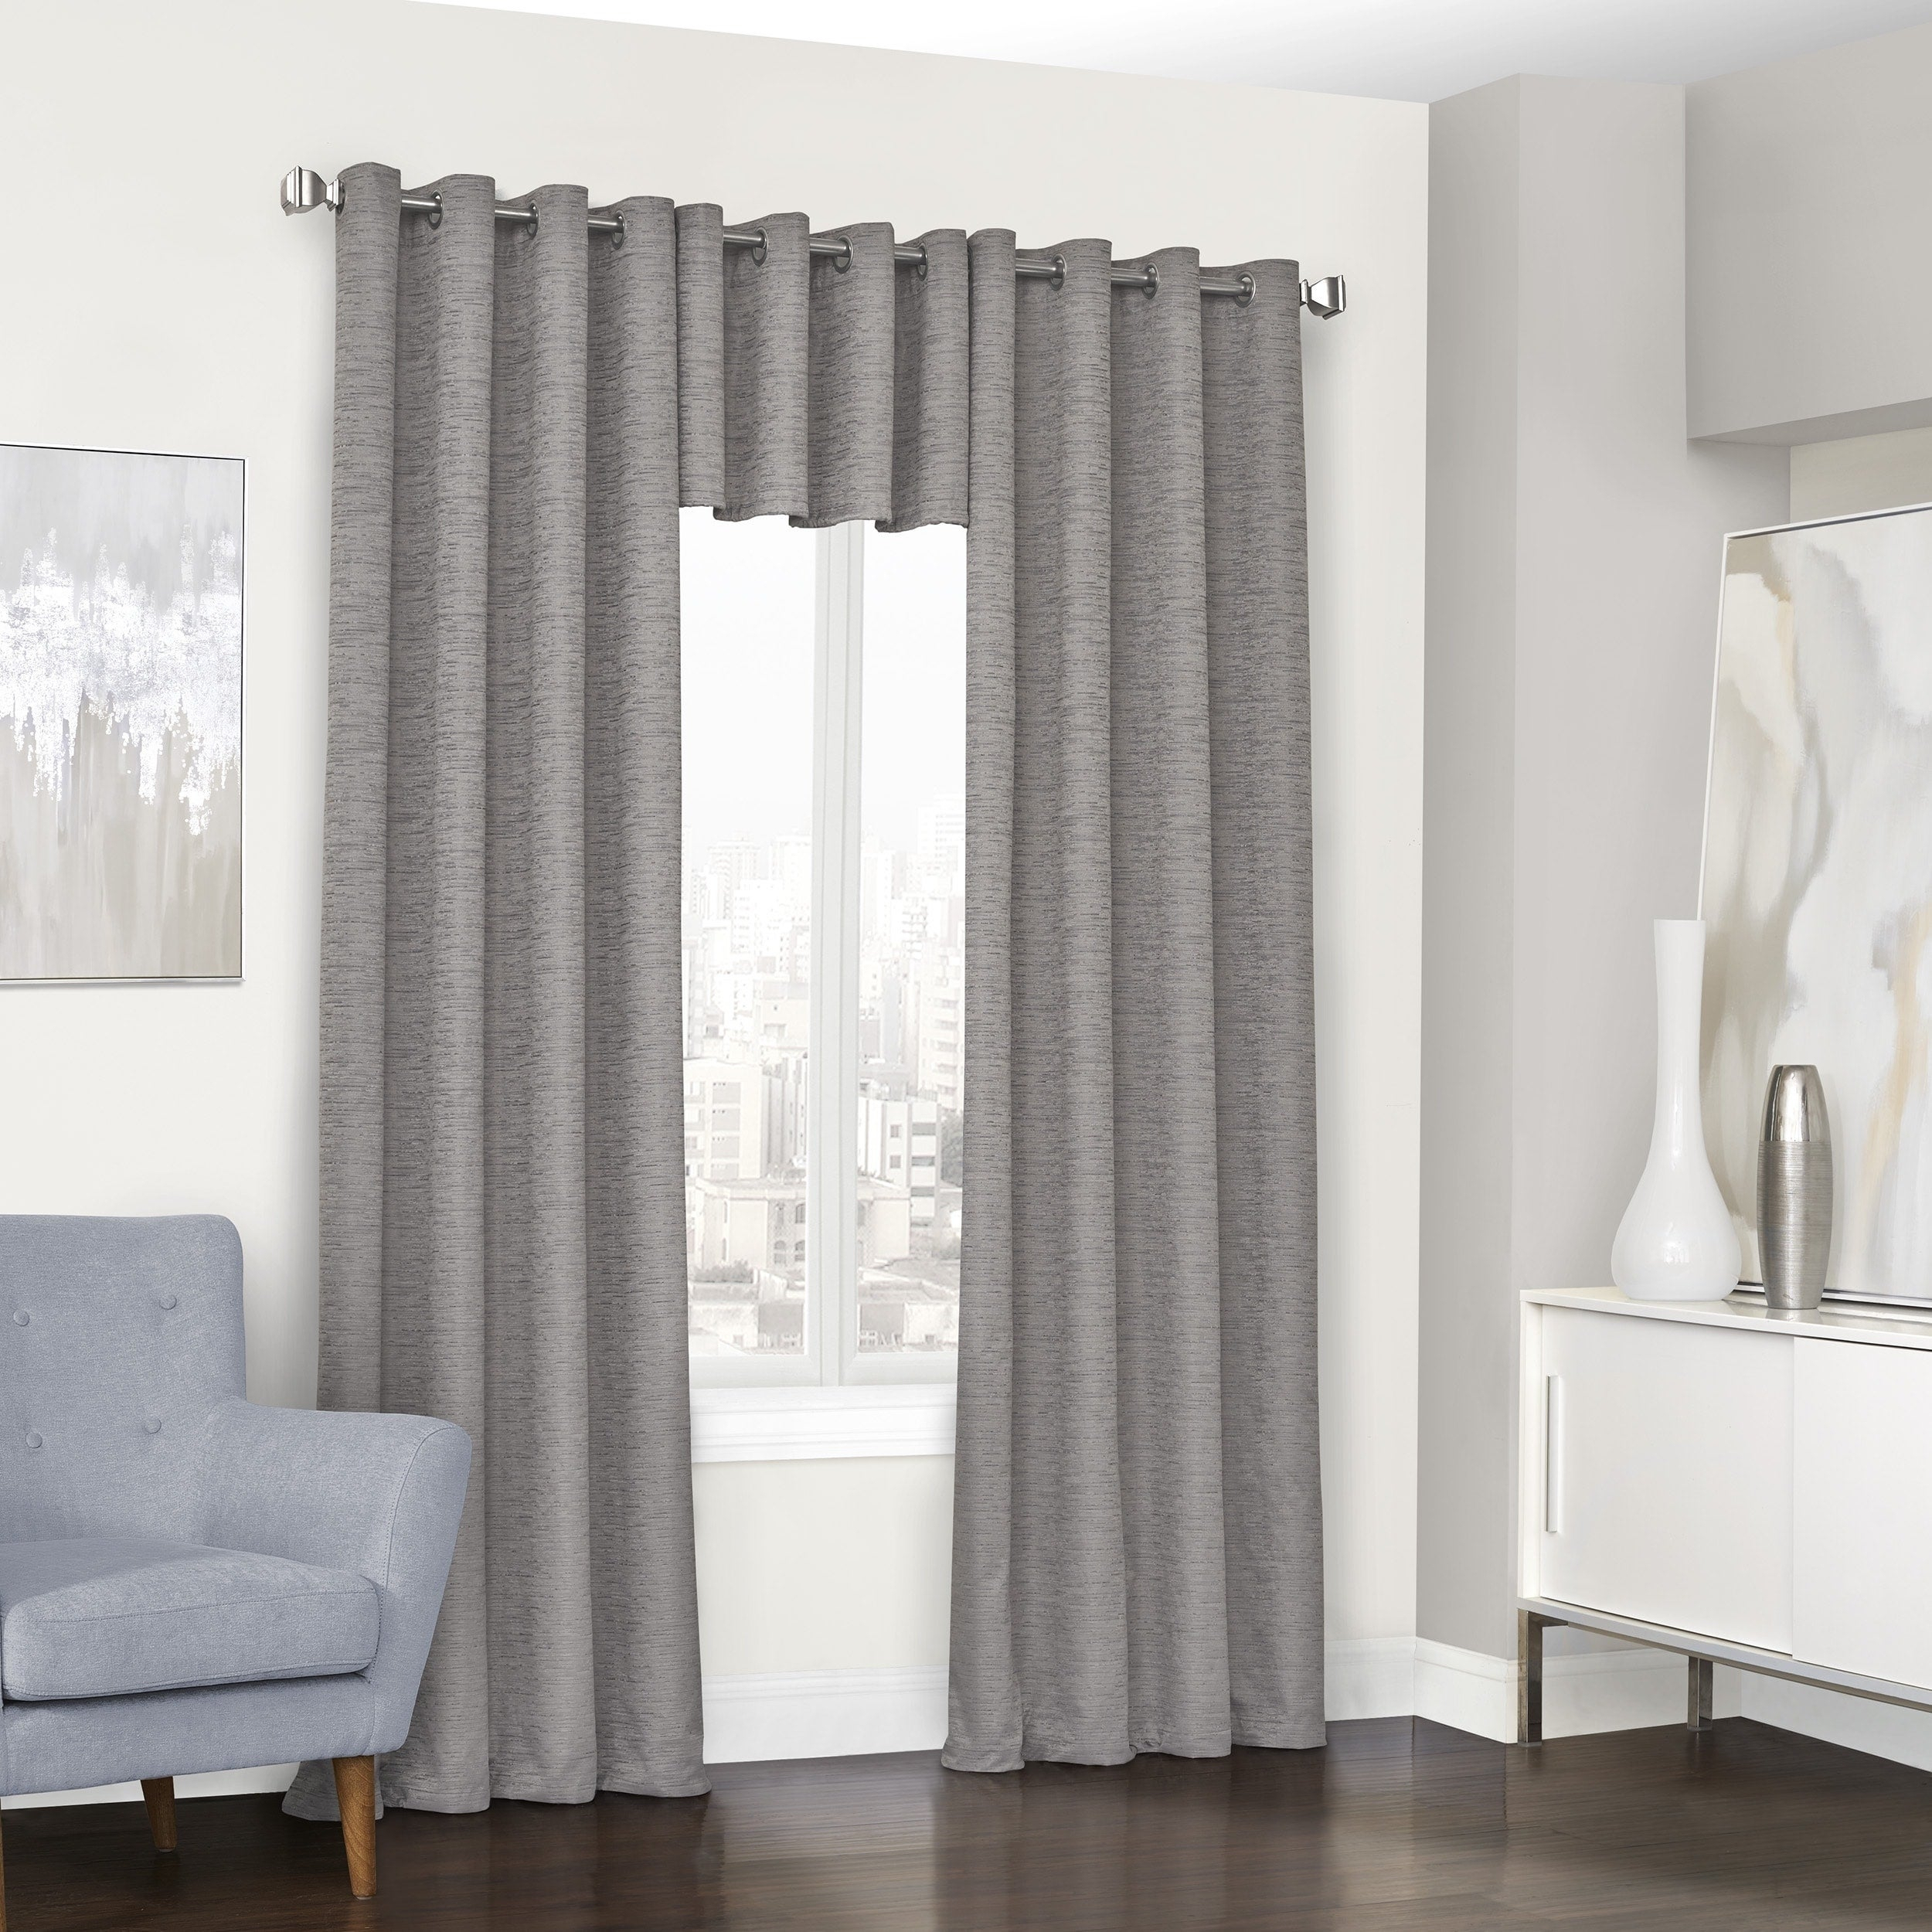 Eclipse Randall Blackout Grommet Window Curtain Panel – N/a In Eclipse Trevi Blackout Grommet Window Curtain Panels (View 5 of 20)